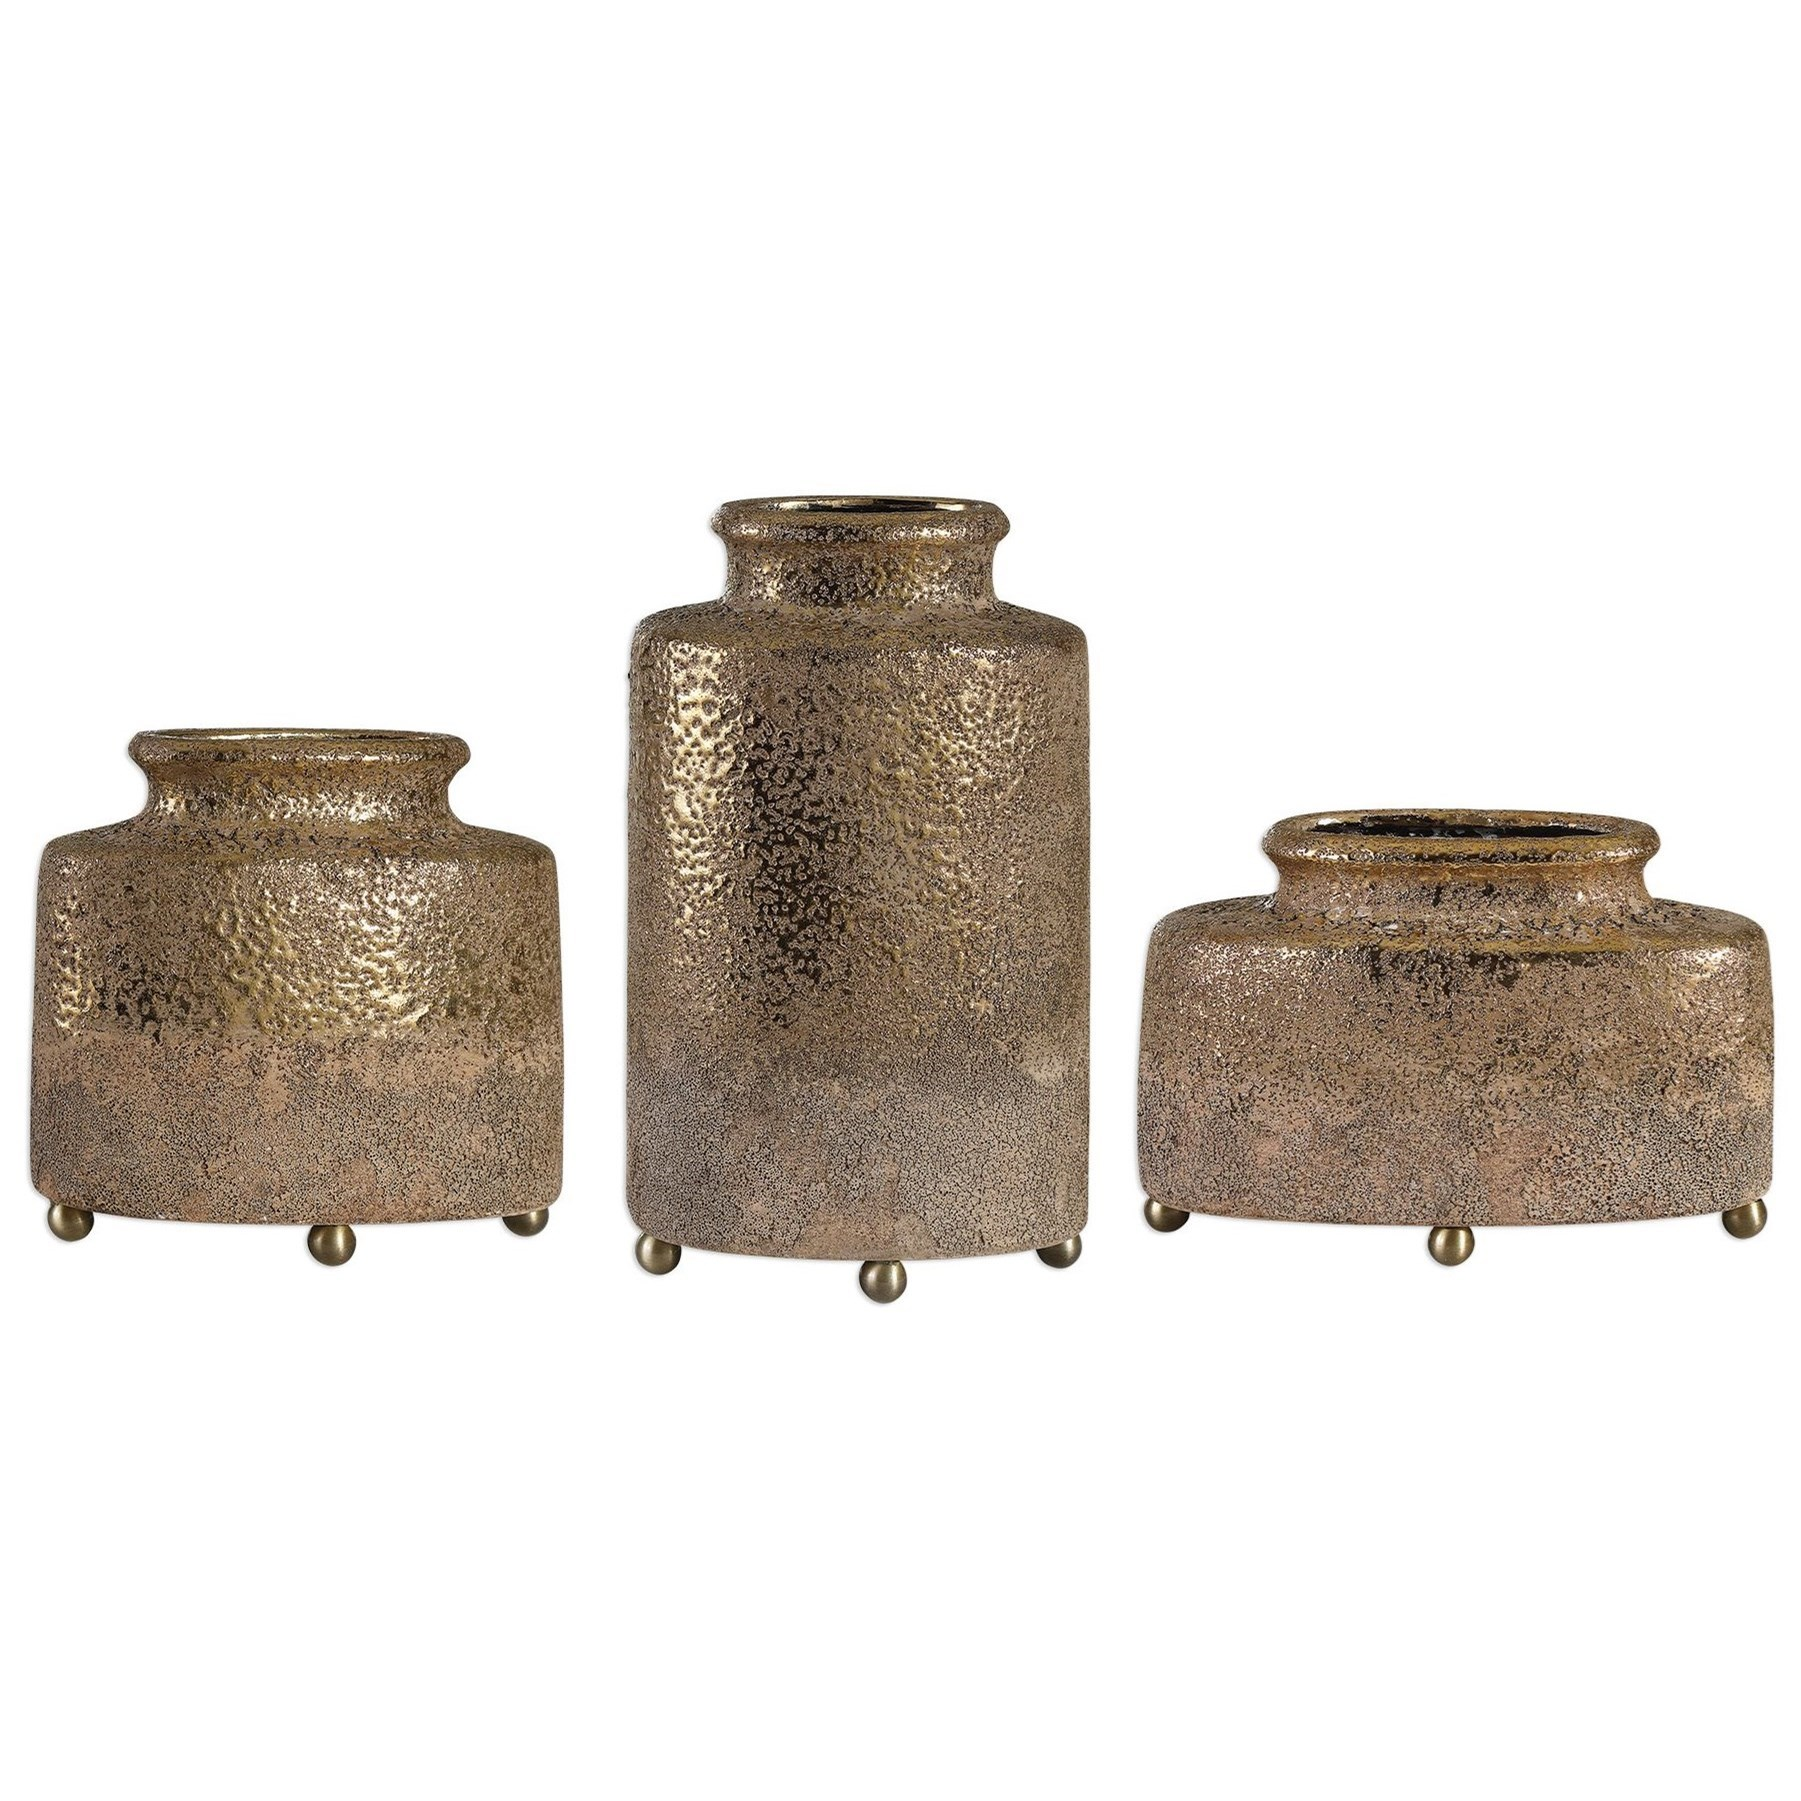 Accessories - Vases and Urns Kallie Metallic Golden Vessels S/3 by Uttermost at Suburban Furniture